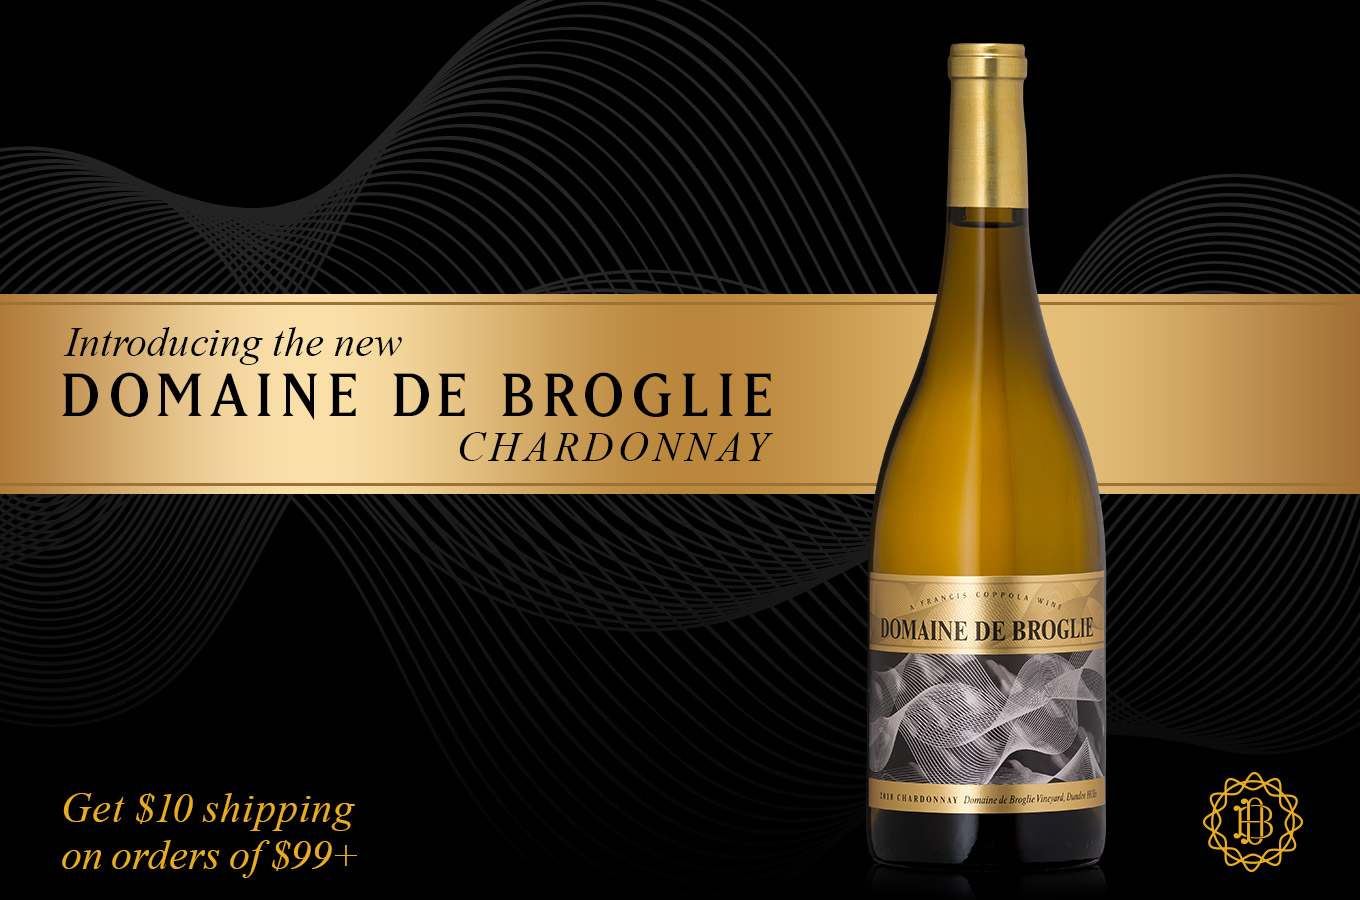 Introducing the NEW Domaine de Broglie Chardonnay. Get $10 shipping on orders of $99+